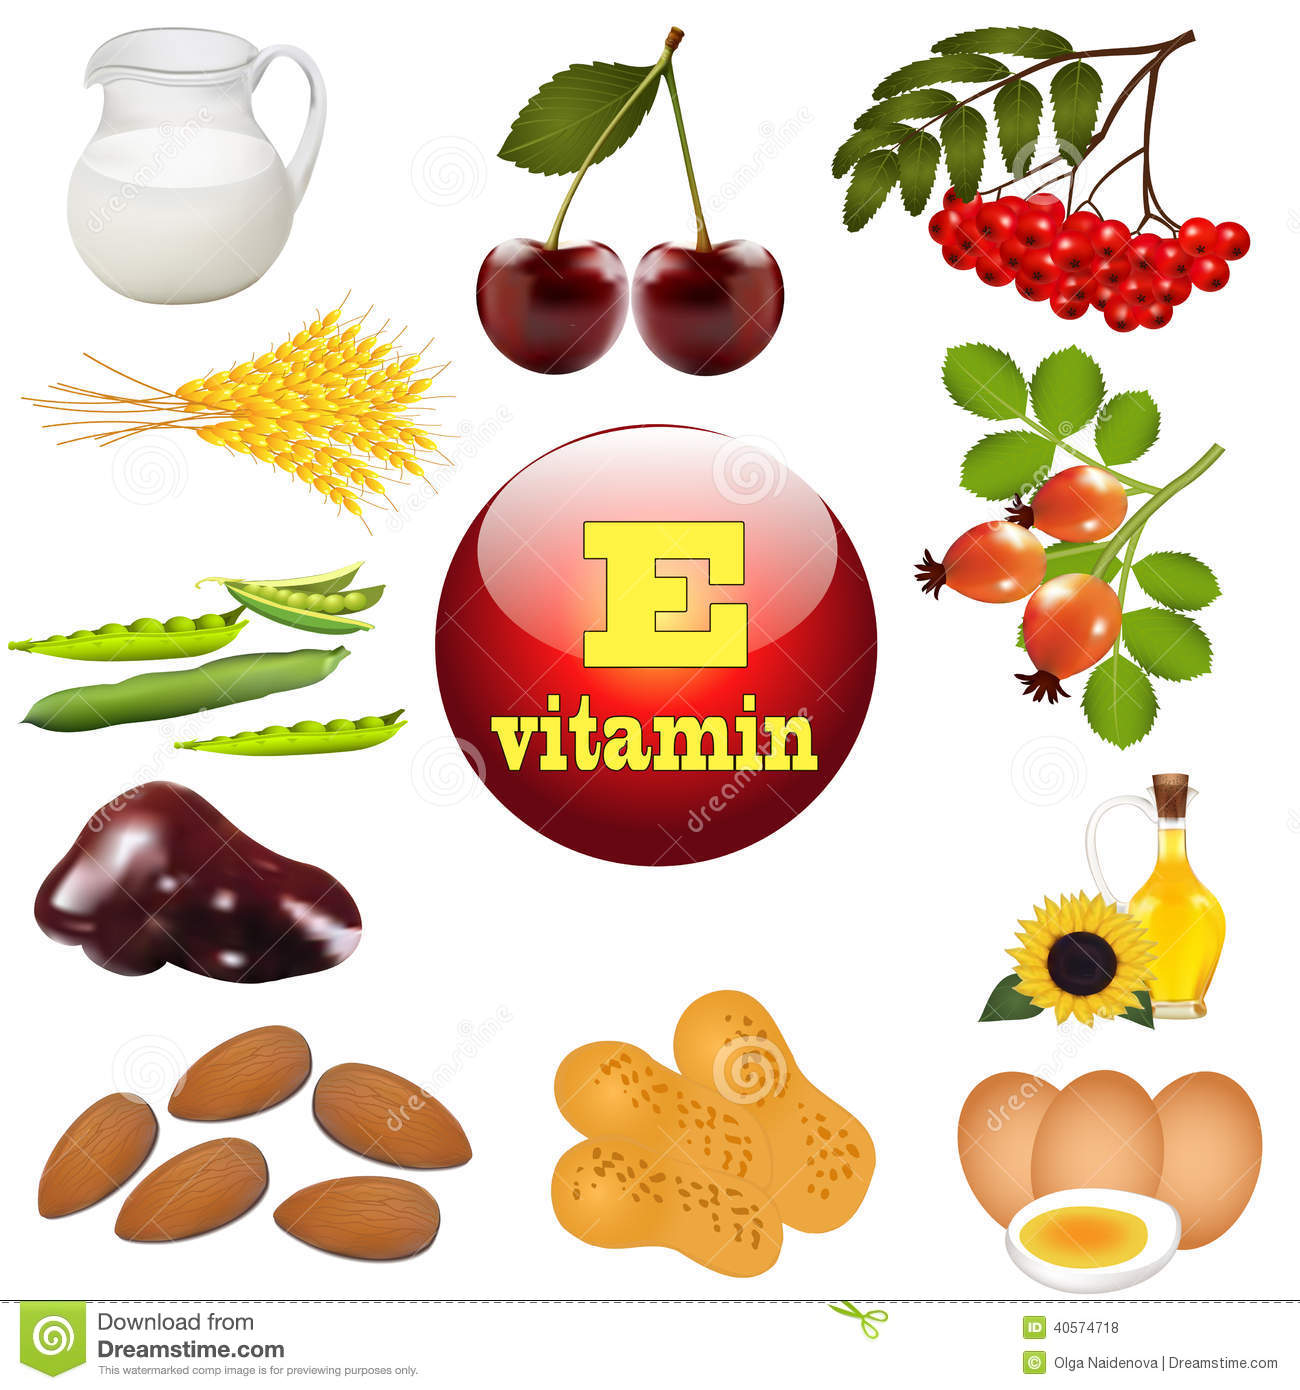 Illustration Vitamin E The Origin Stock Vector Illustration Of